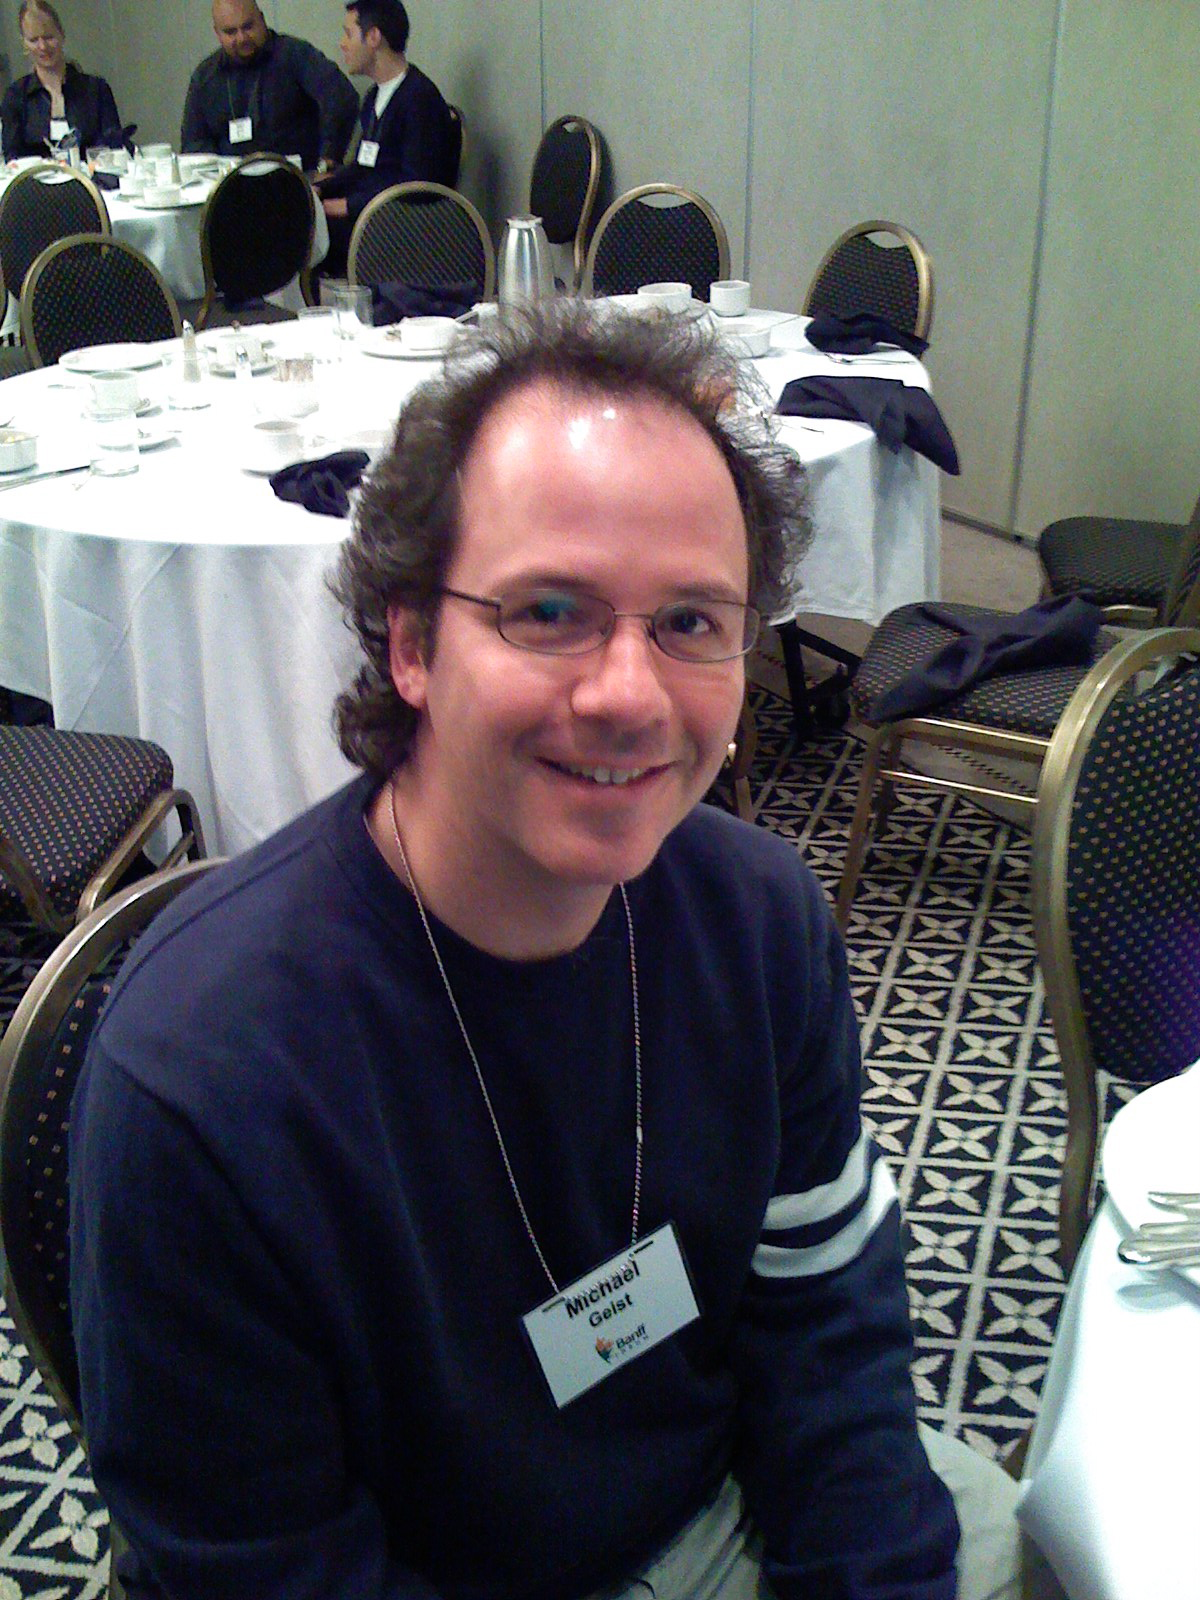 Michael Geist in October 2007